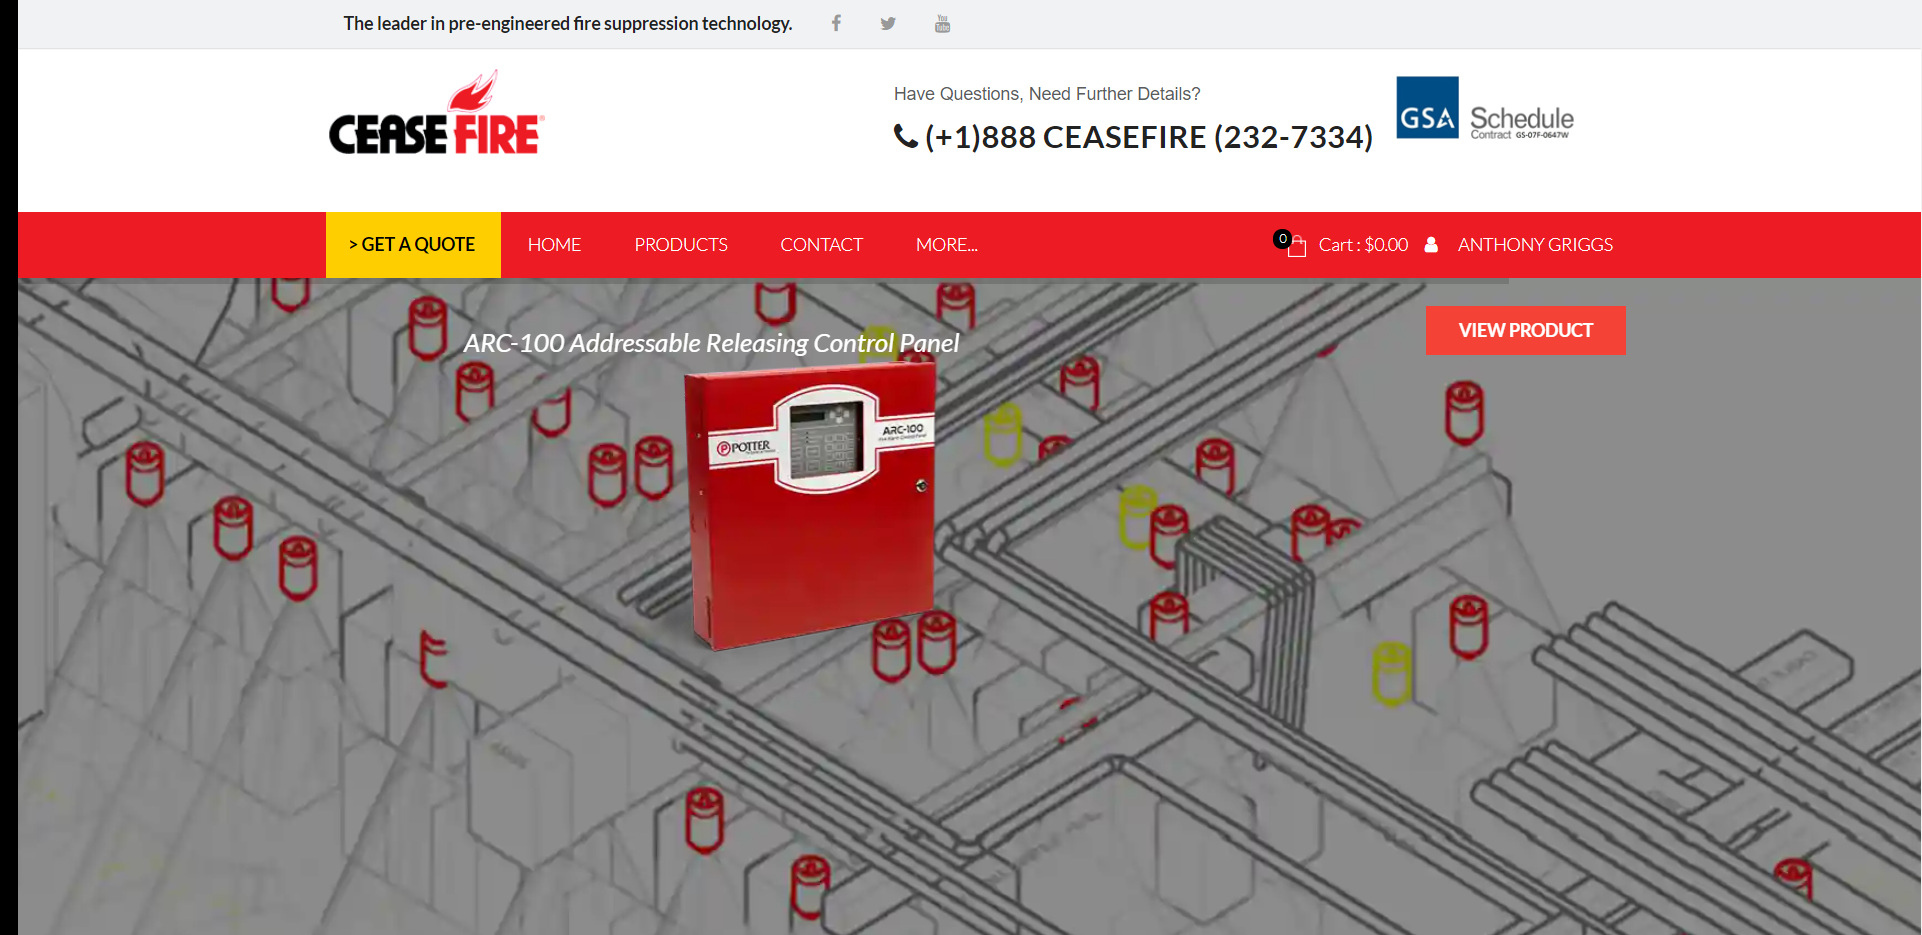 How to Download CAD Models and BIM Data for Ceasefire Fire Suppression Products